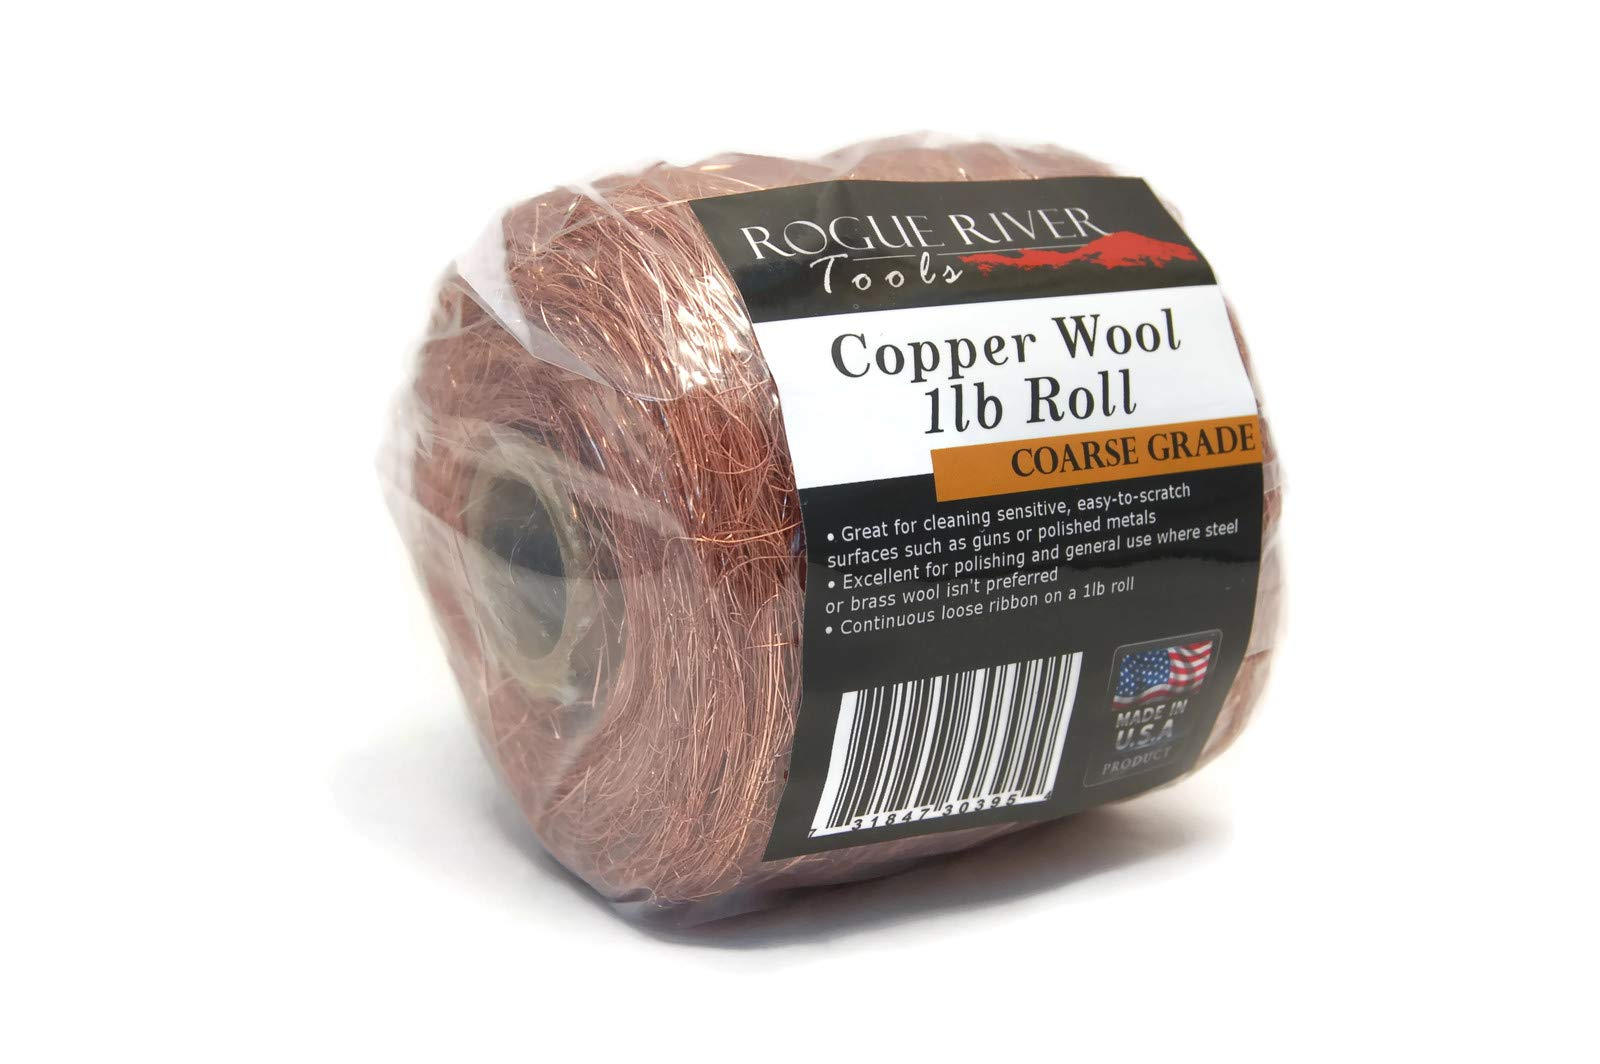 Copper Wool 1lb Roll (Coarse) - Made in USA! by Rogue River Tools